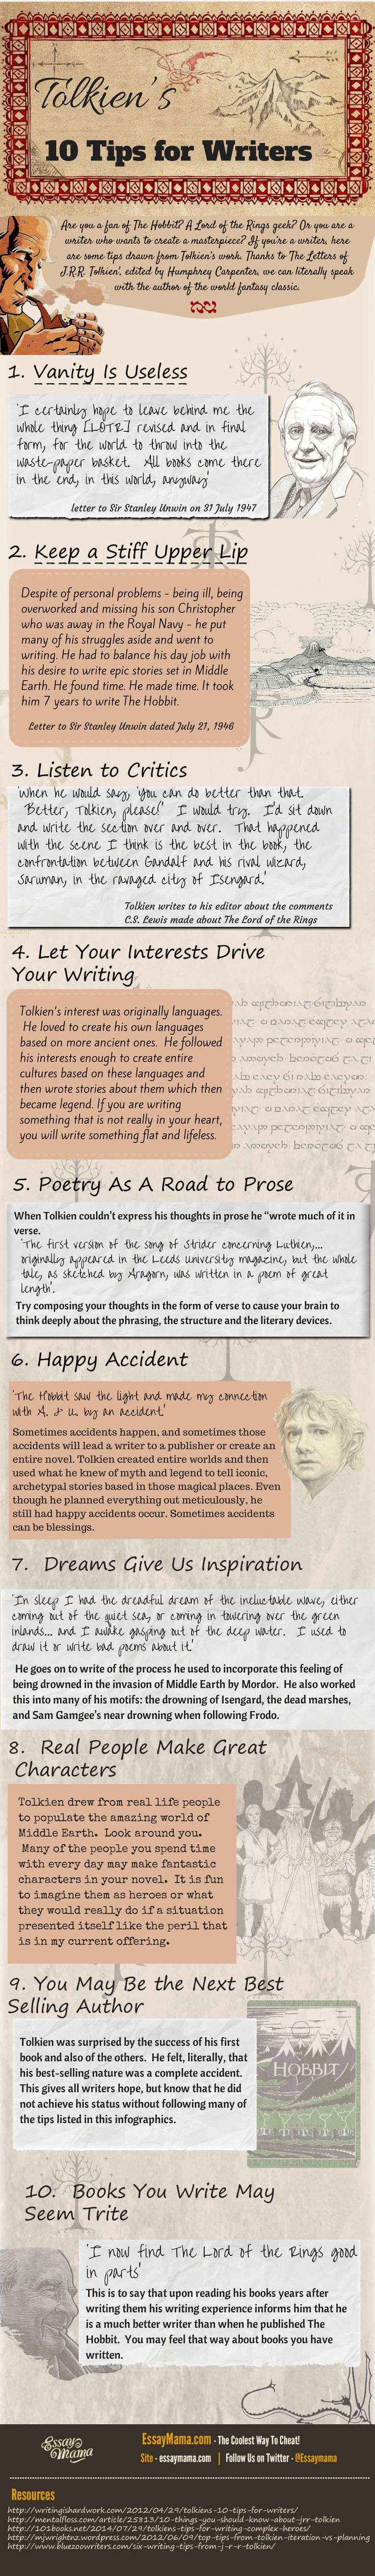 J.R.R. Tolkien's 10 Tips for Writers #writing #amwriting